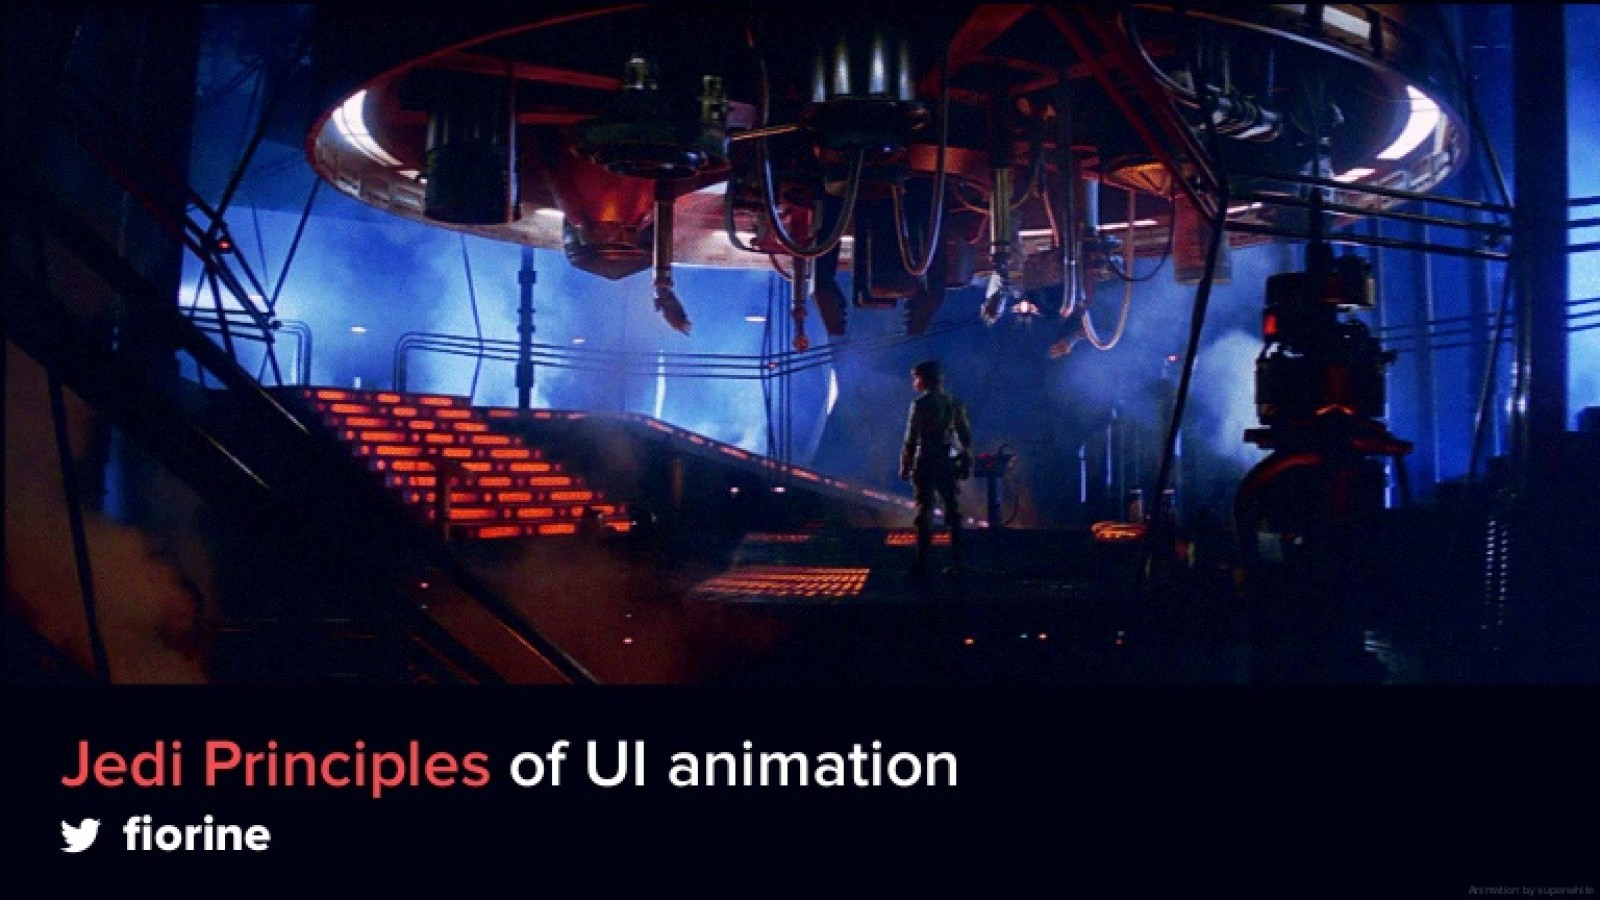 Jedi Principles of UI Animation